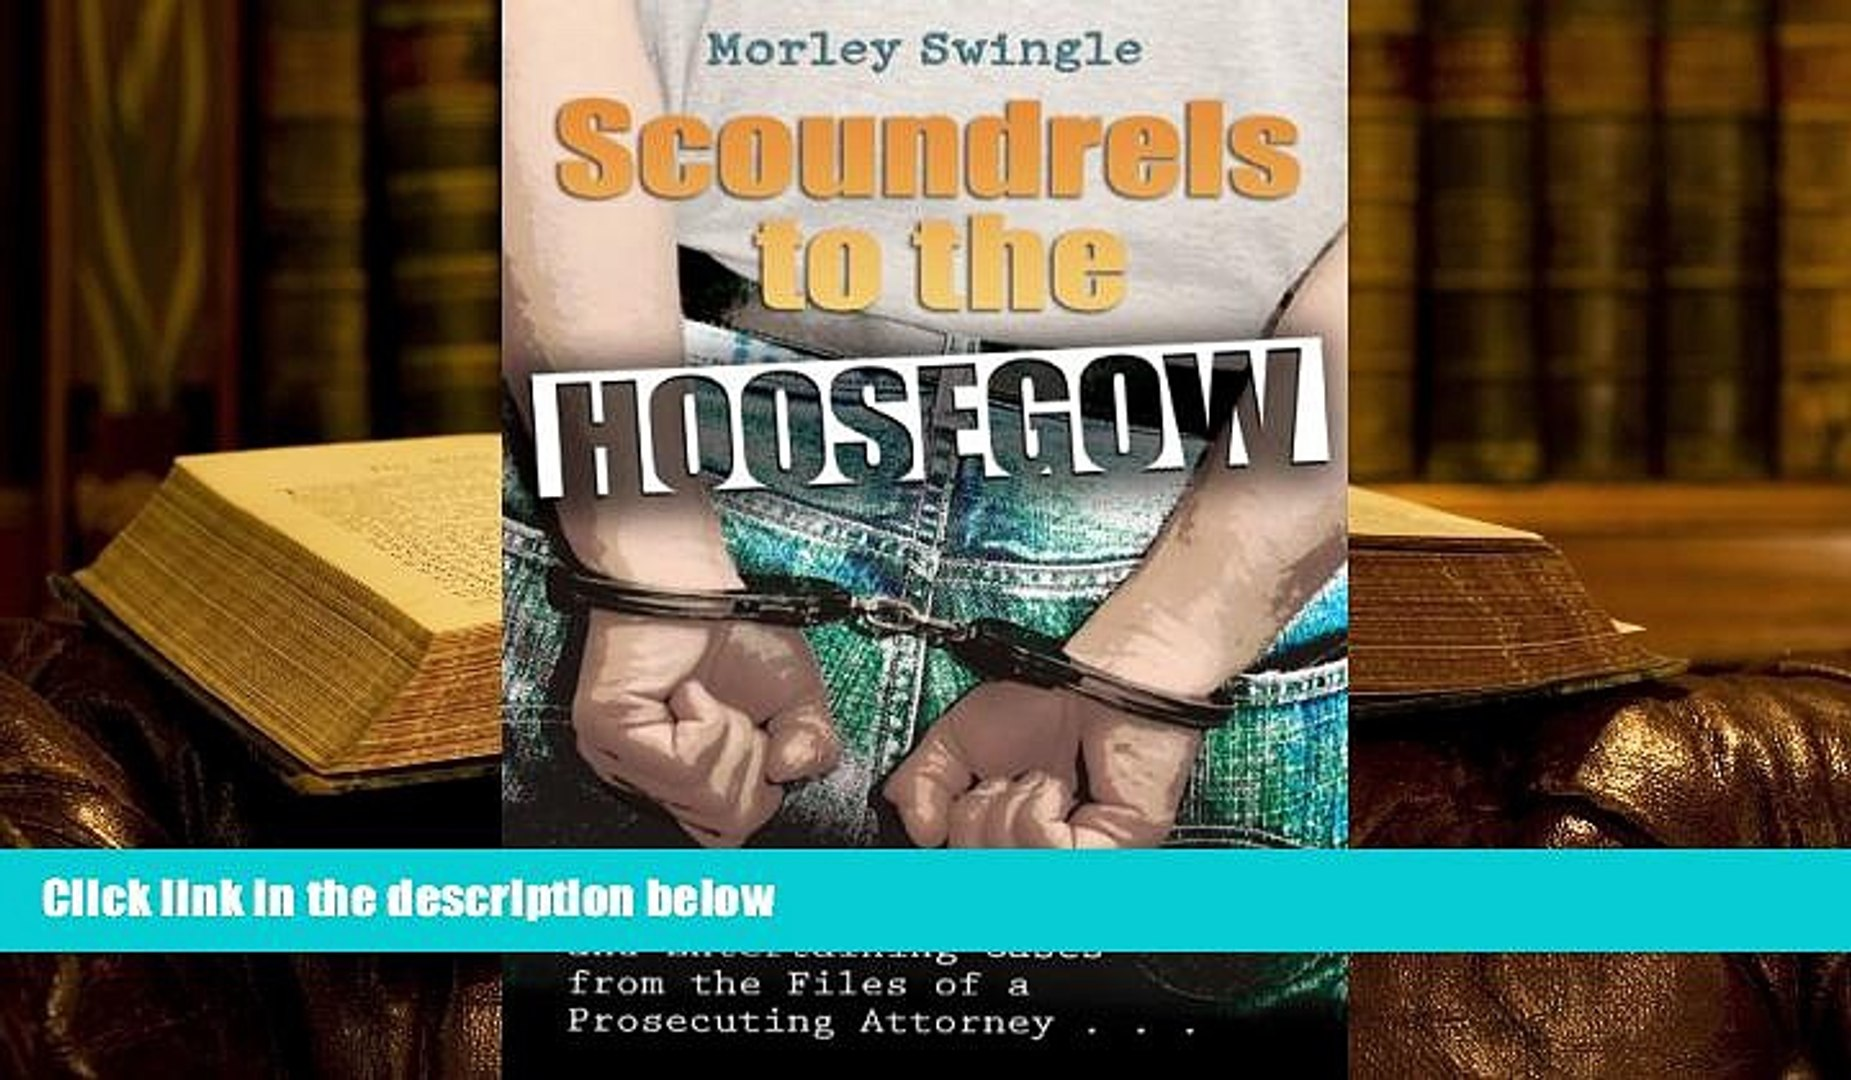 PDF [DOWNLOAD] Scoundrels to the Hoosegow: Perry Mason Moments and Entertaining Cases from the